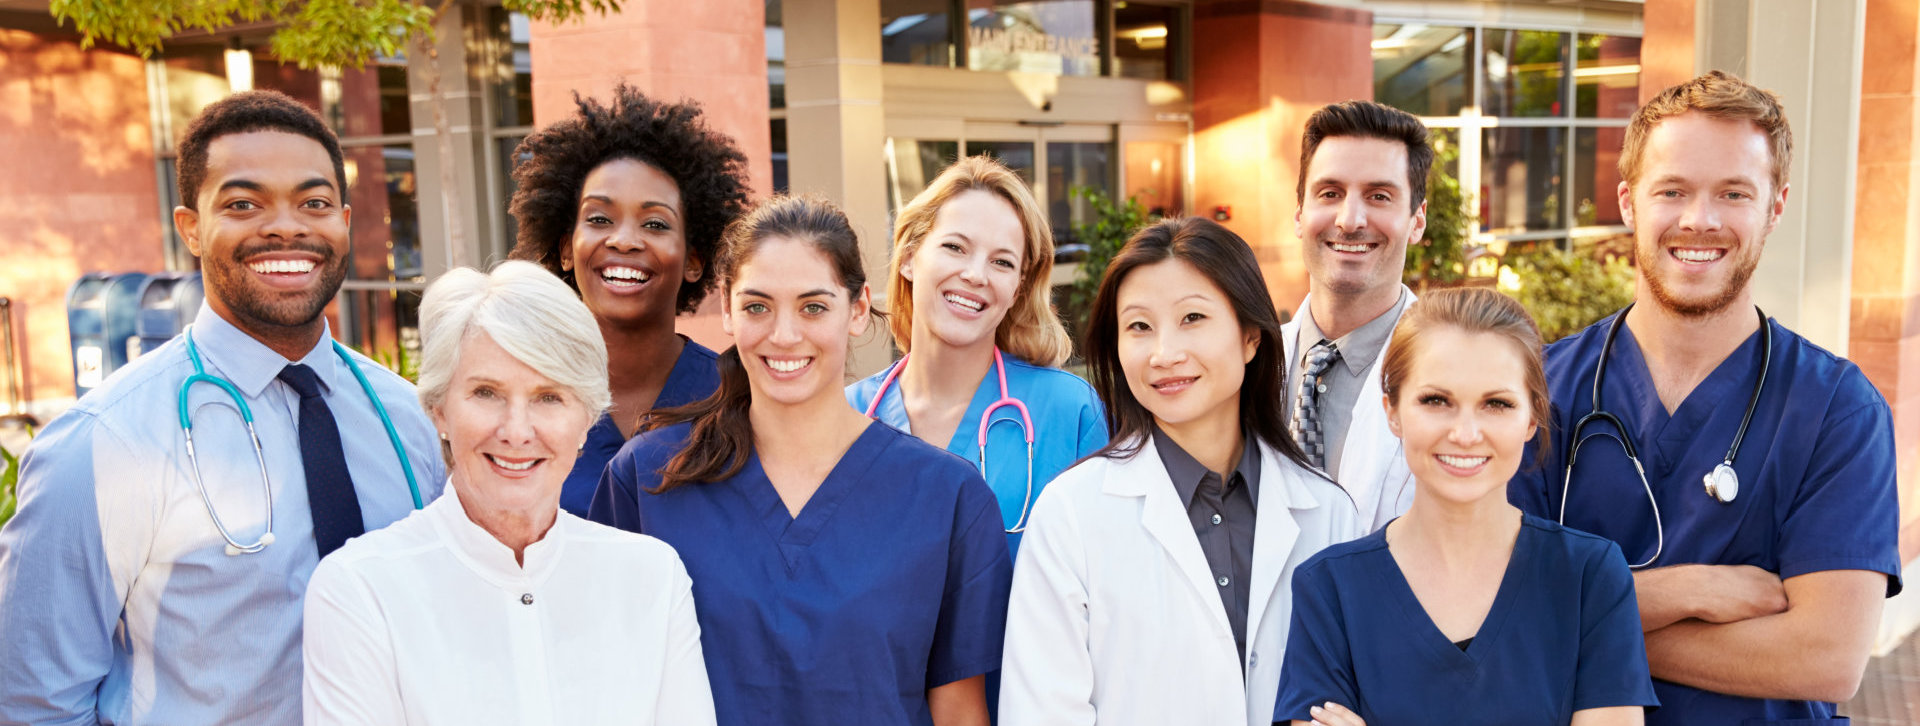 medical practitioners smiling